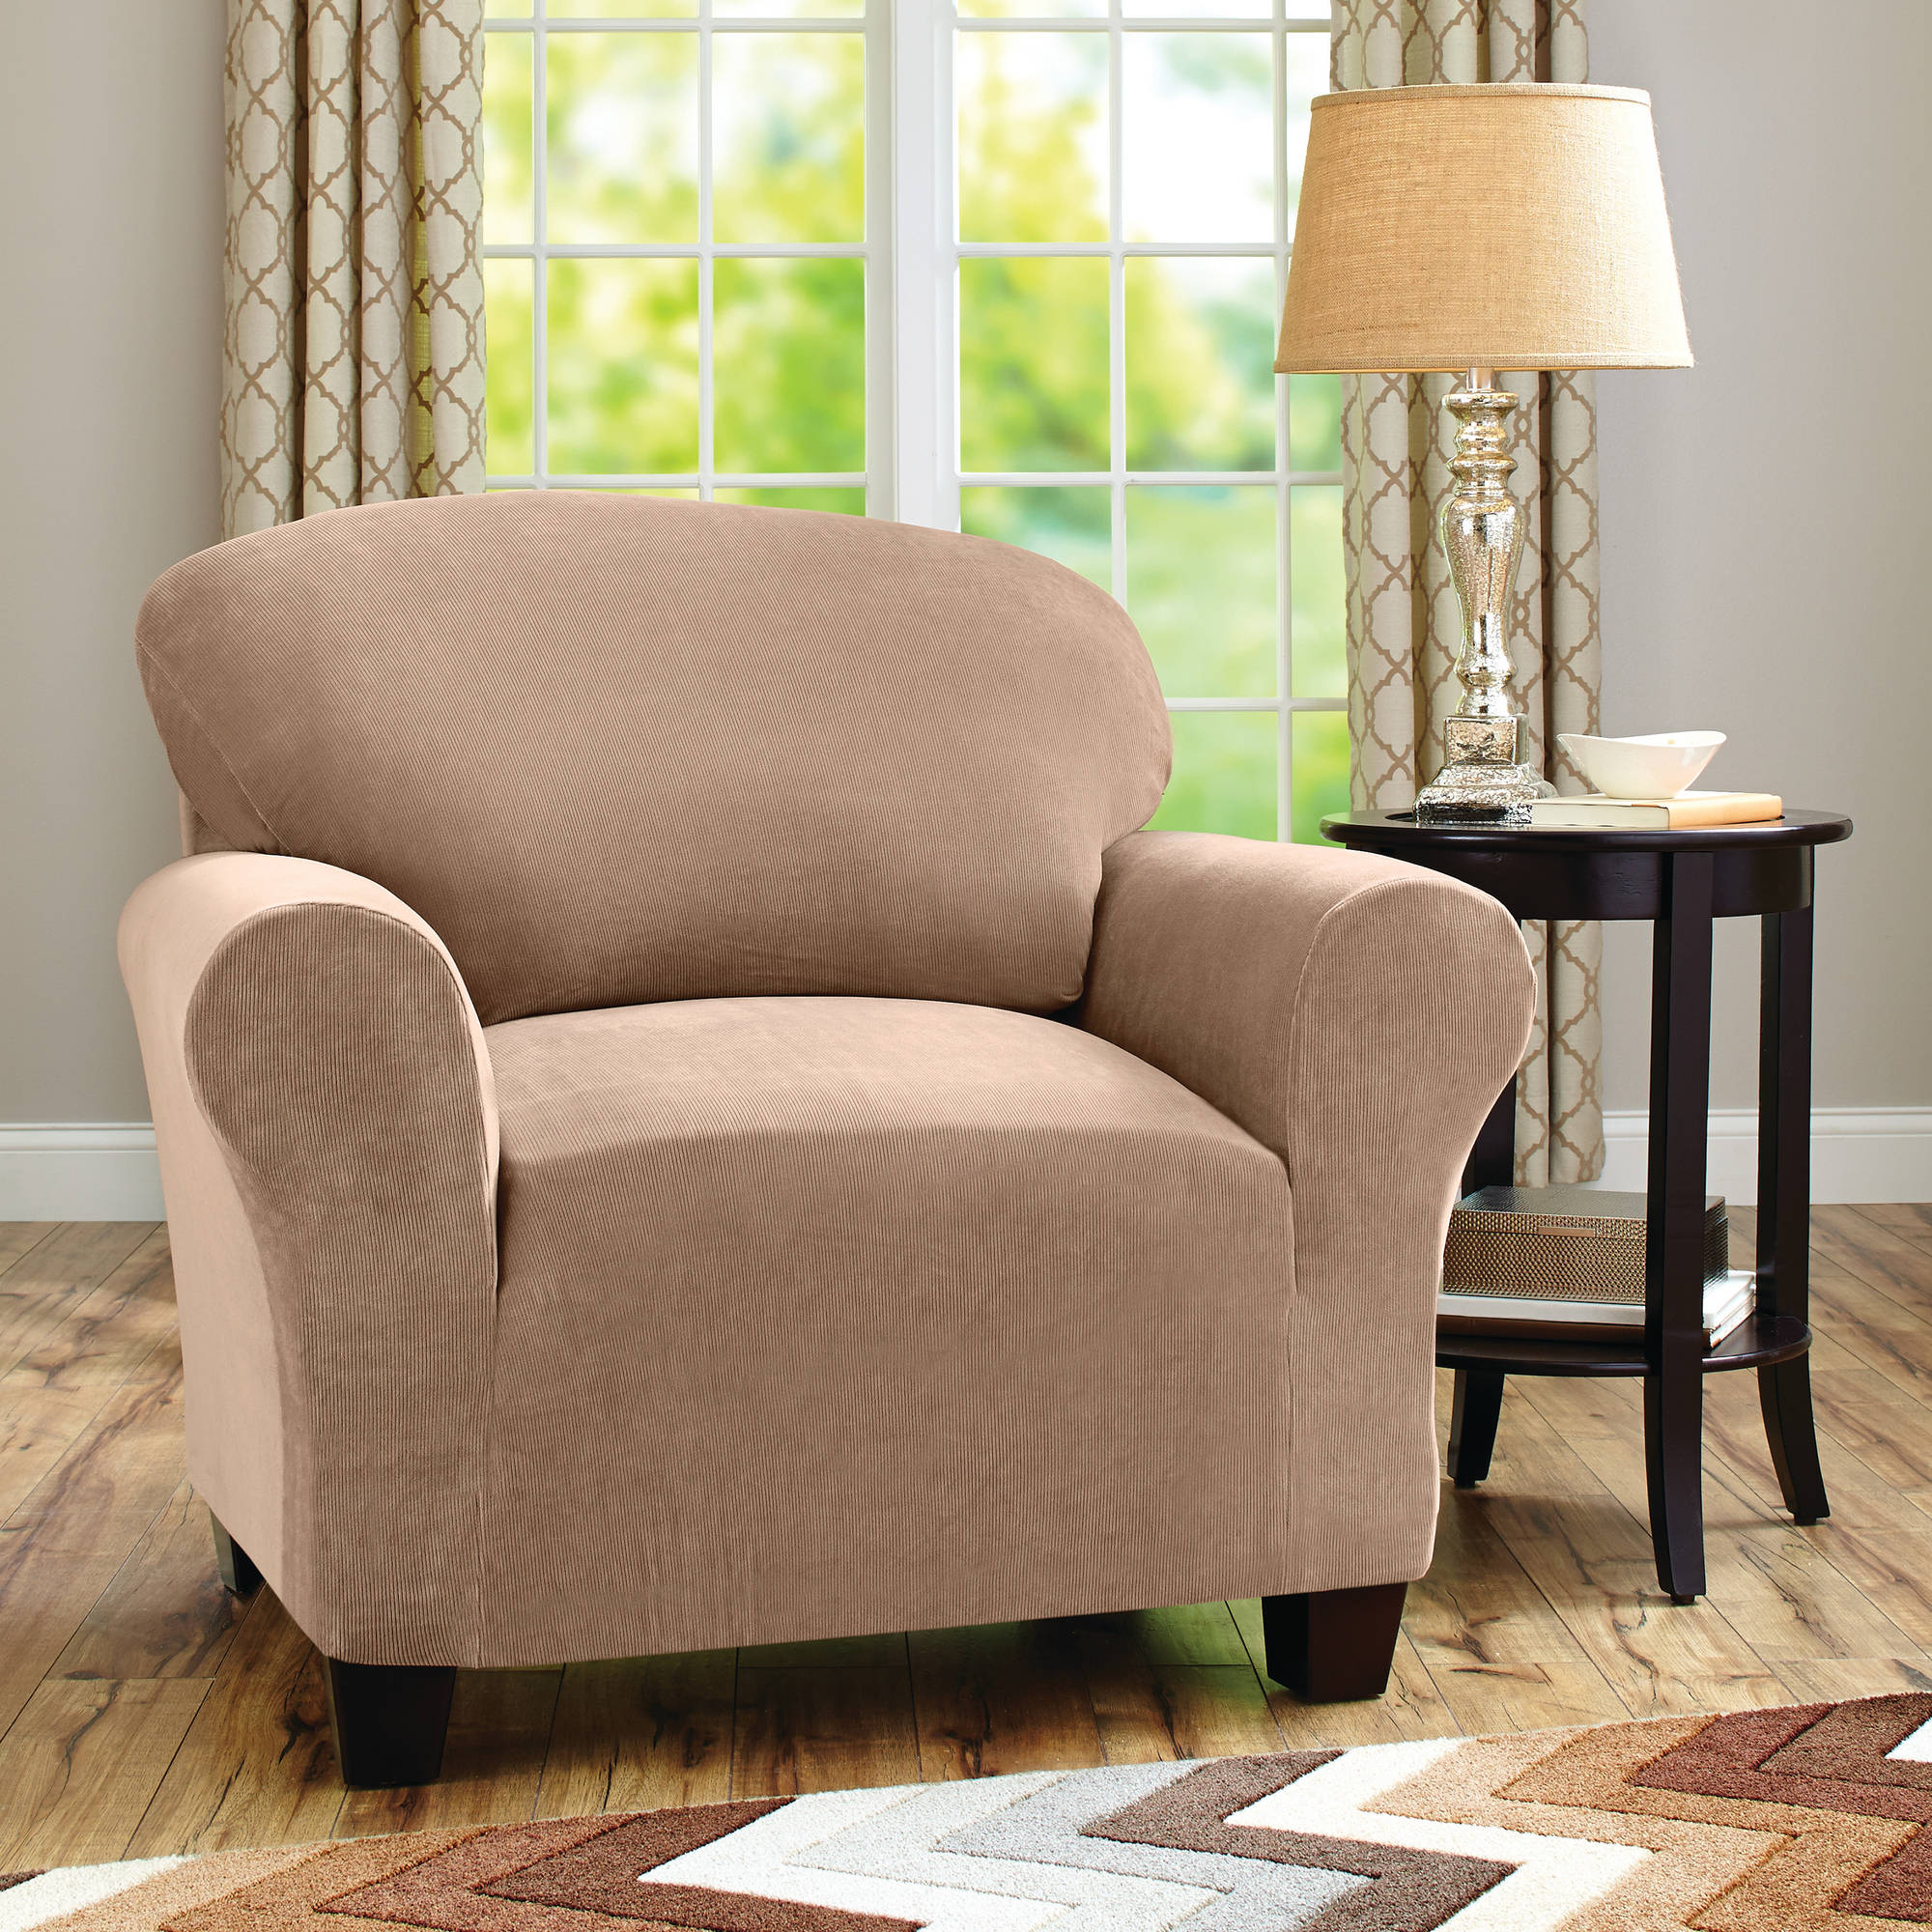 Better Homes and Gardens One-Piece Stretch Fine Corduroy Chair Slipcover